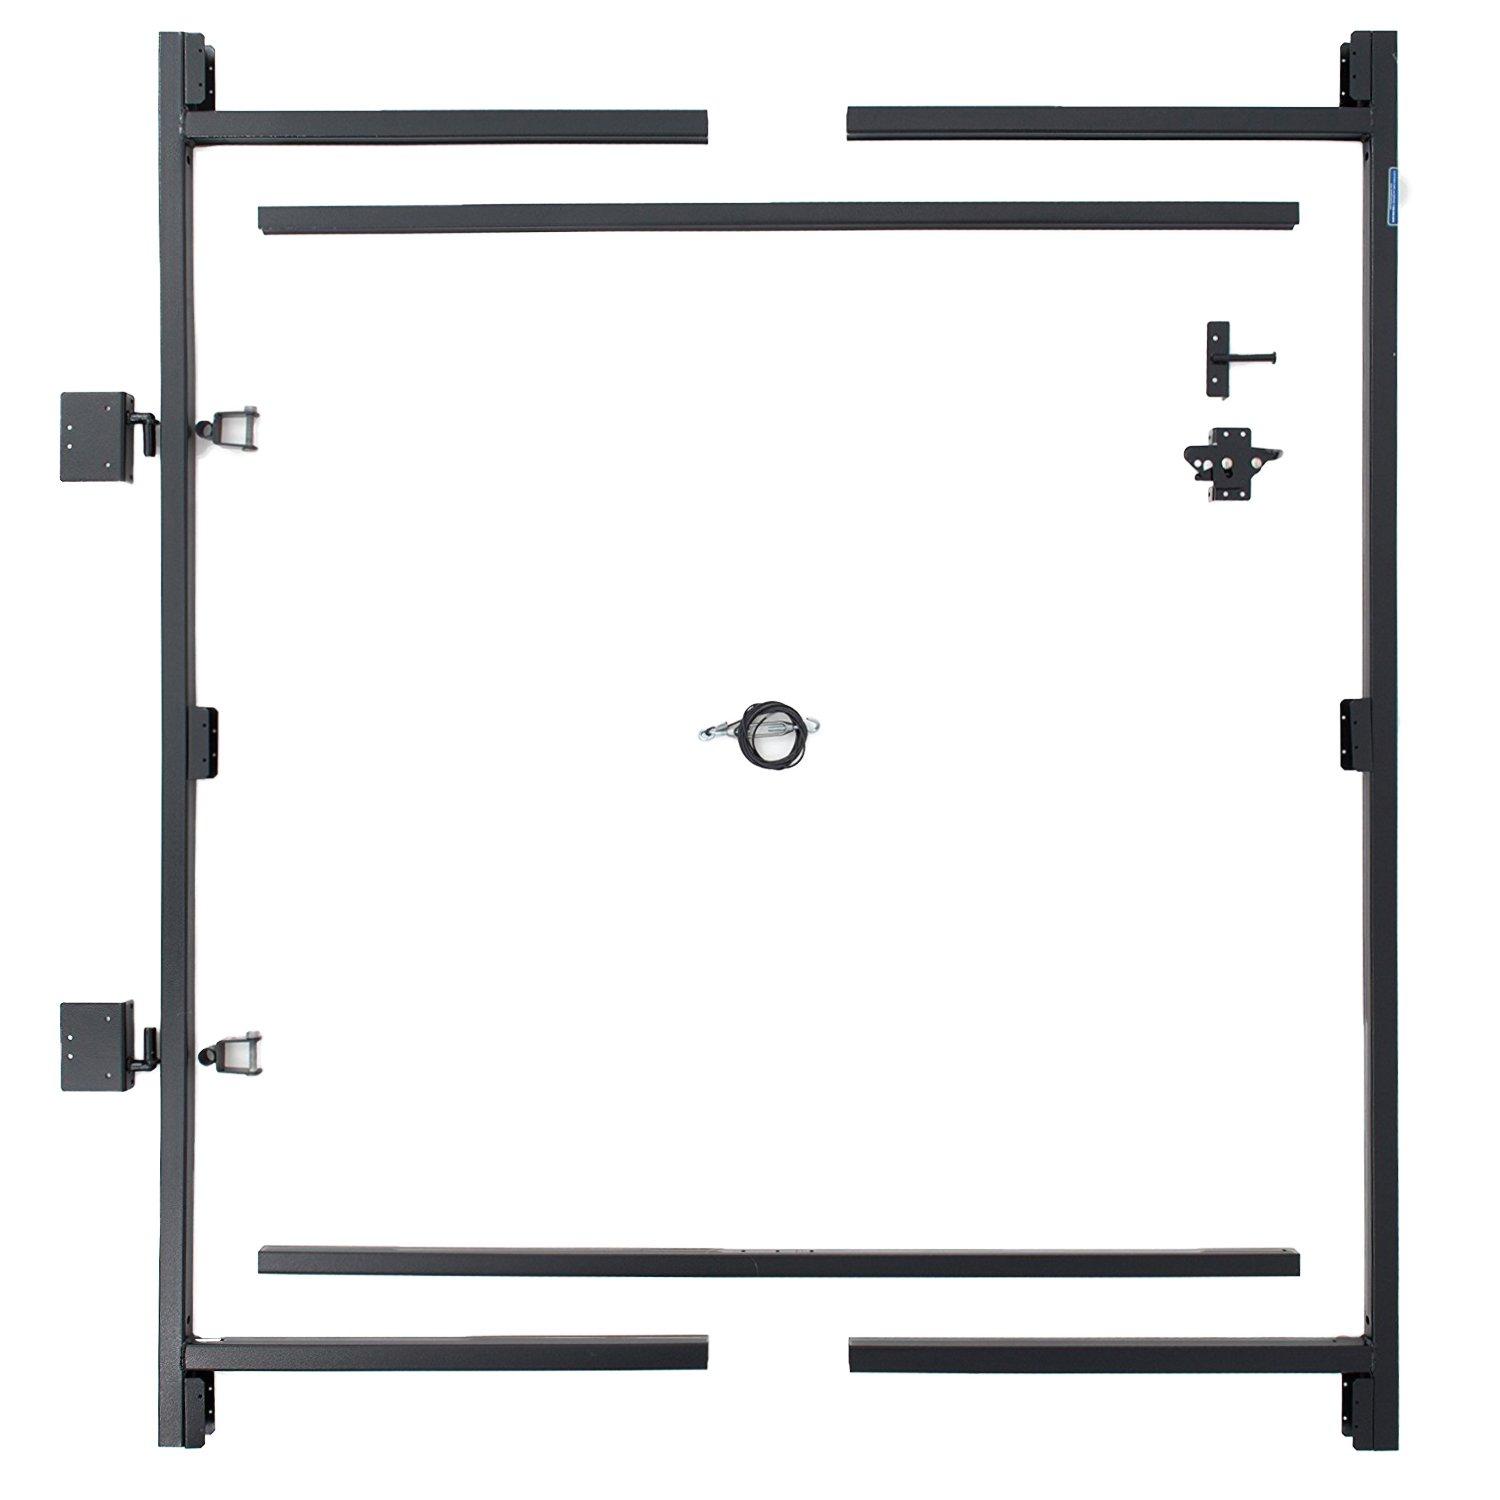 Adjust-A-Gate Steel Frame Gate Building Kit (60''-96'' wide openings up to 6' high fence)